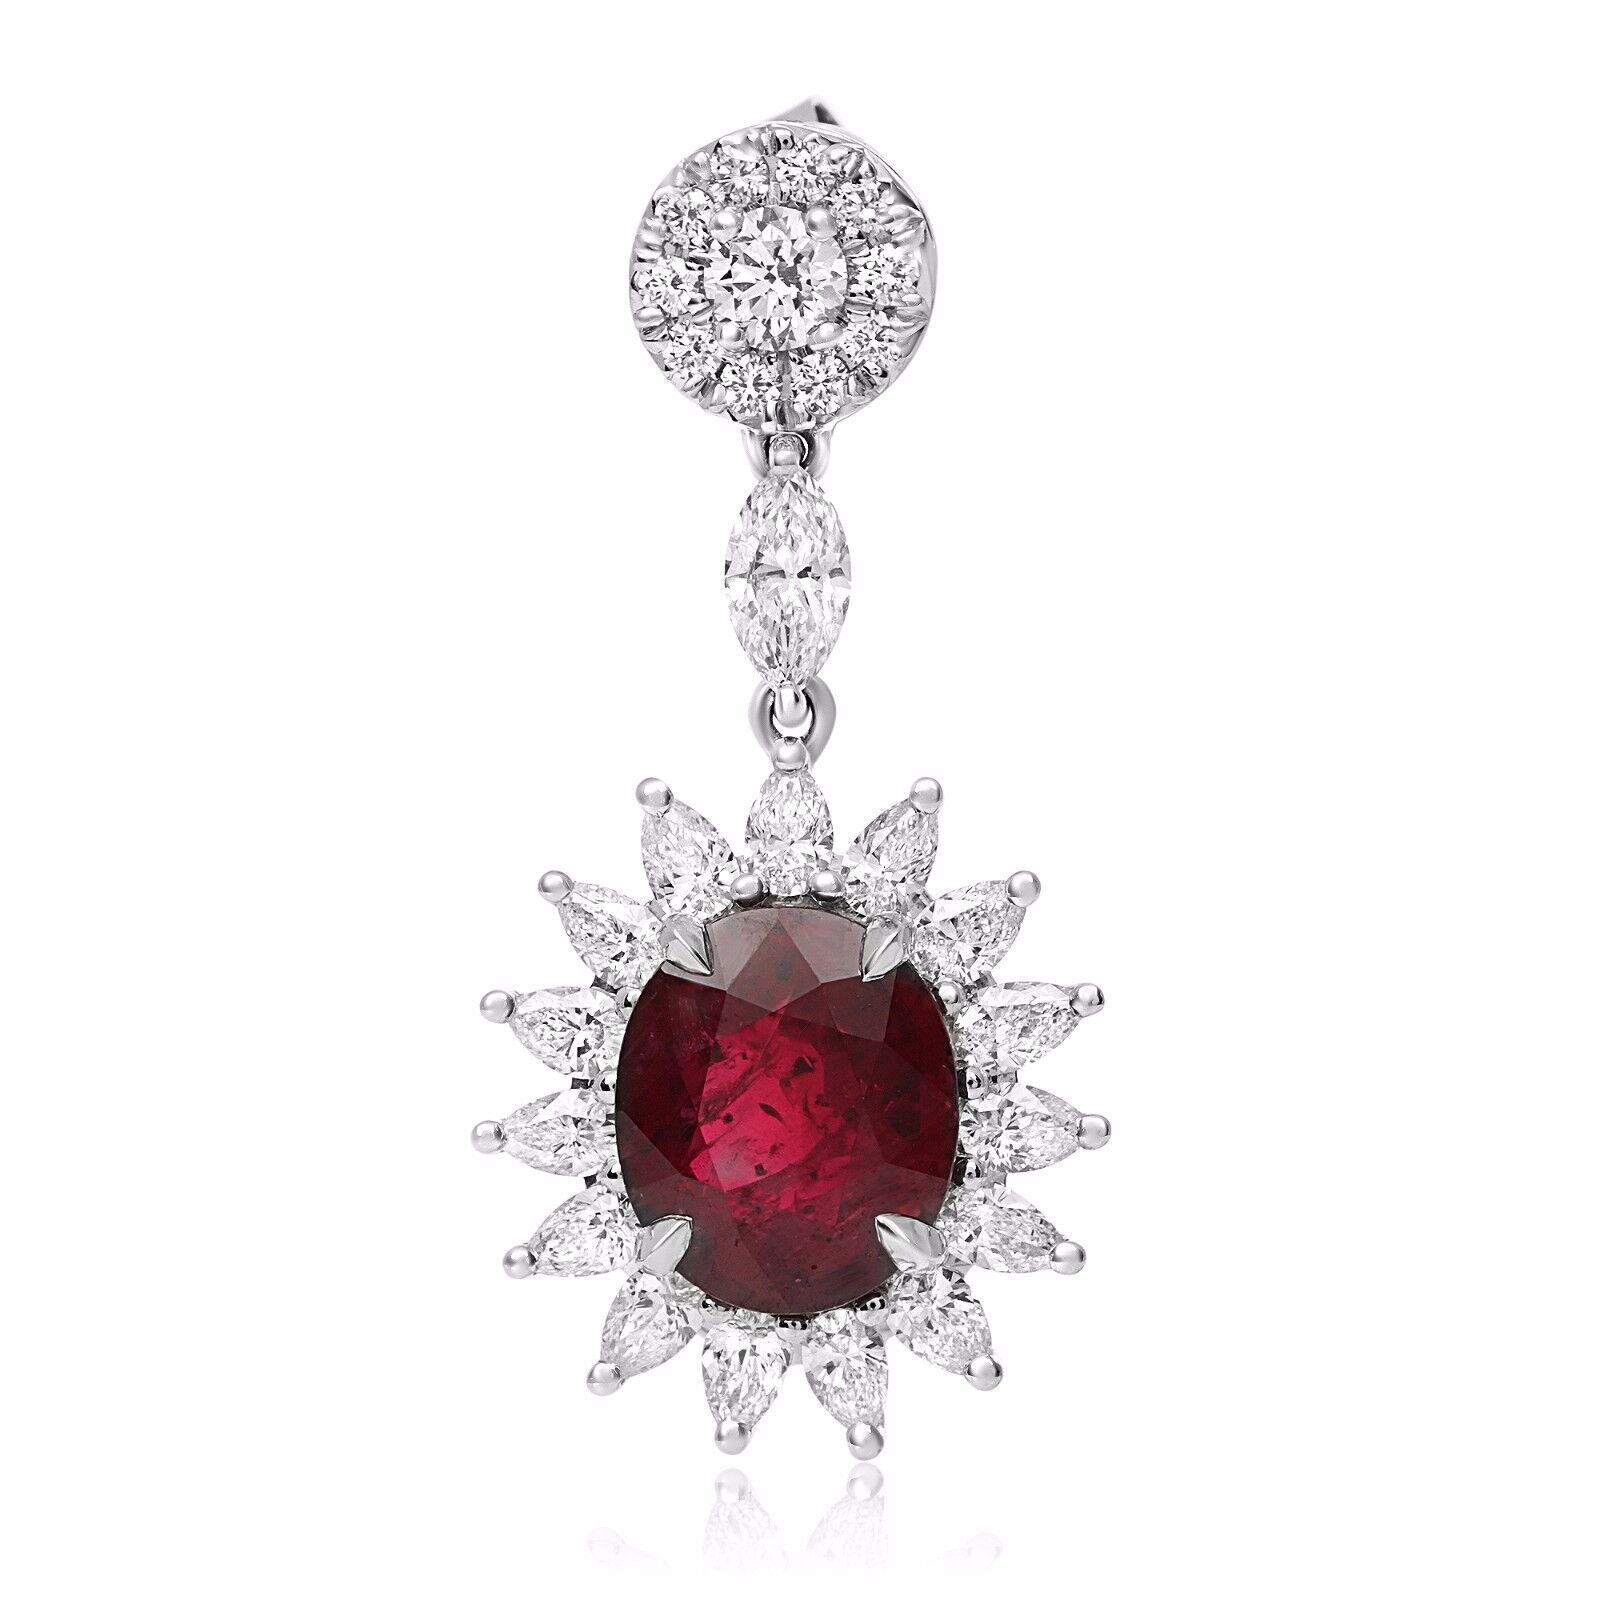 Natural GIA Certified 18K Gold Ruby Earrings with Diamonds 6.72 Carats Rubies 2